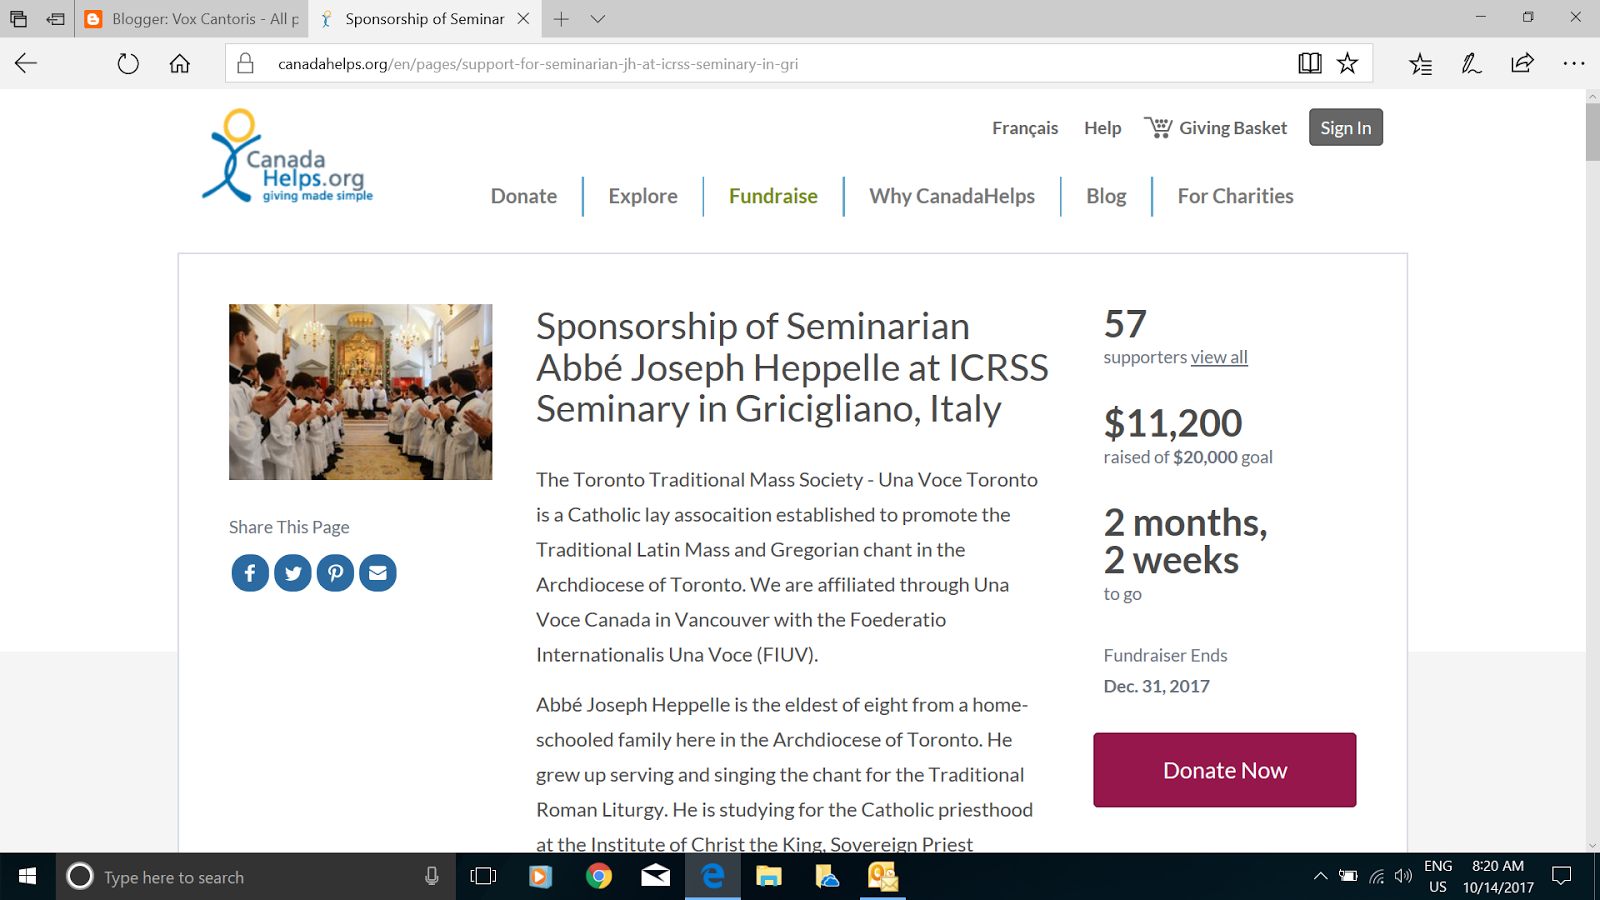 Please consider supporting this campaign to support a Seminarian from Toronto at the ICRSS